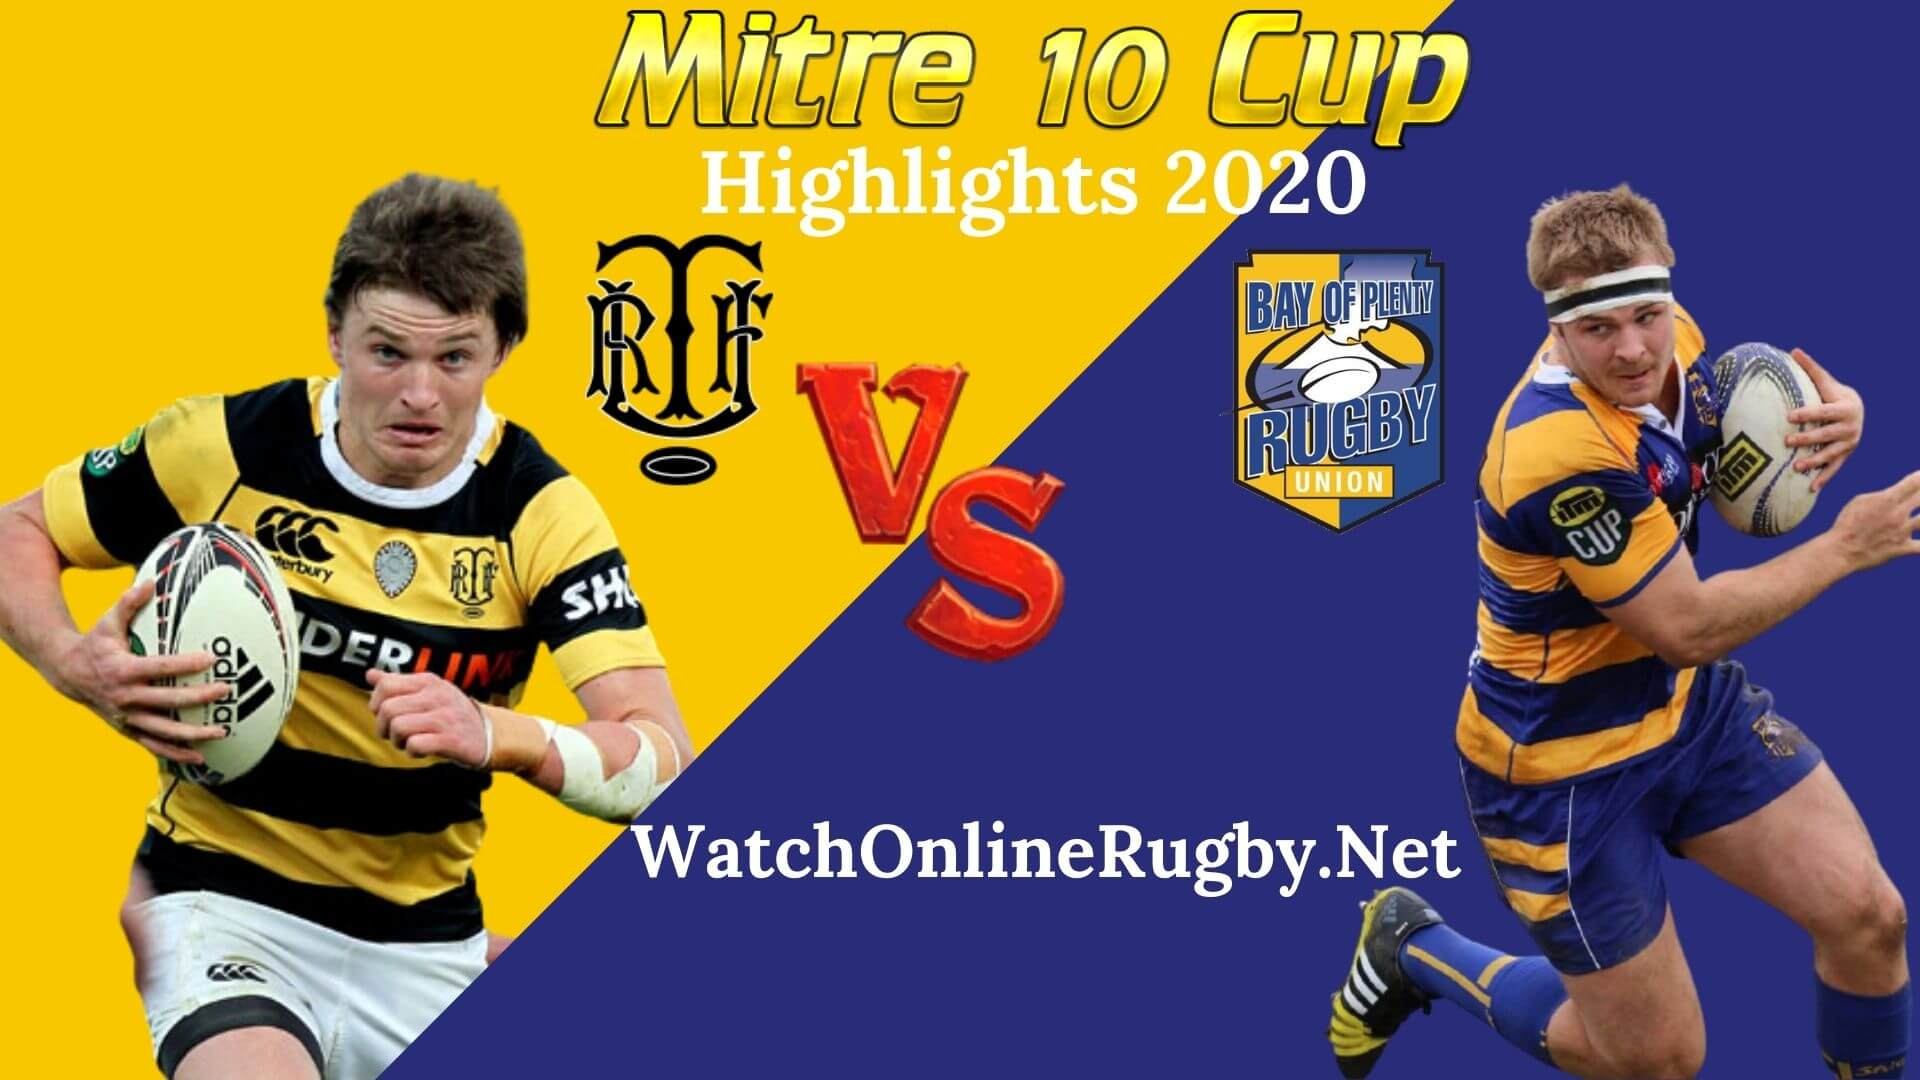 Taranaki vs Bay Of Plenty RD 1 Highlights 2020 M10 Cup